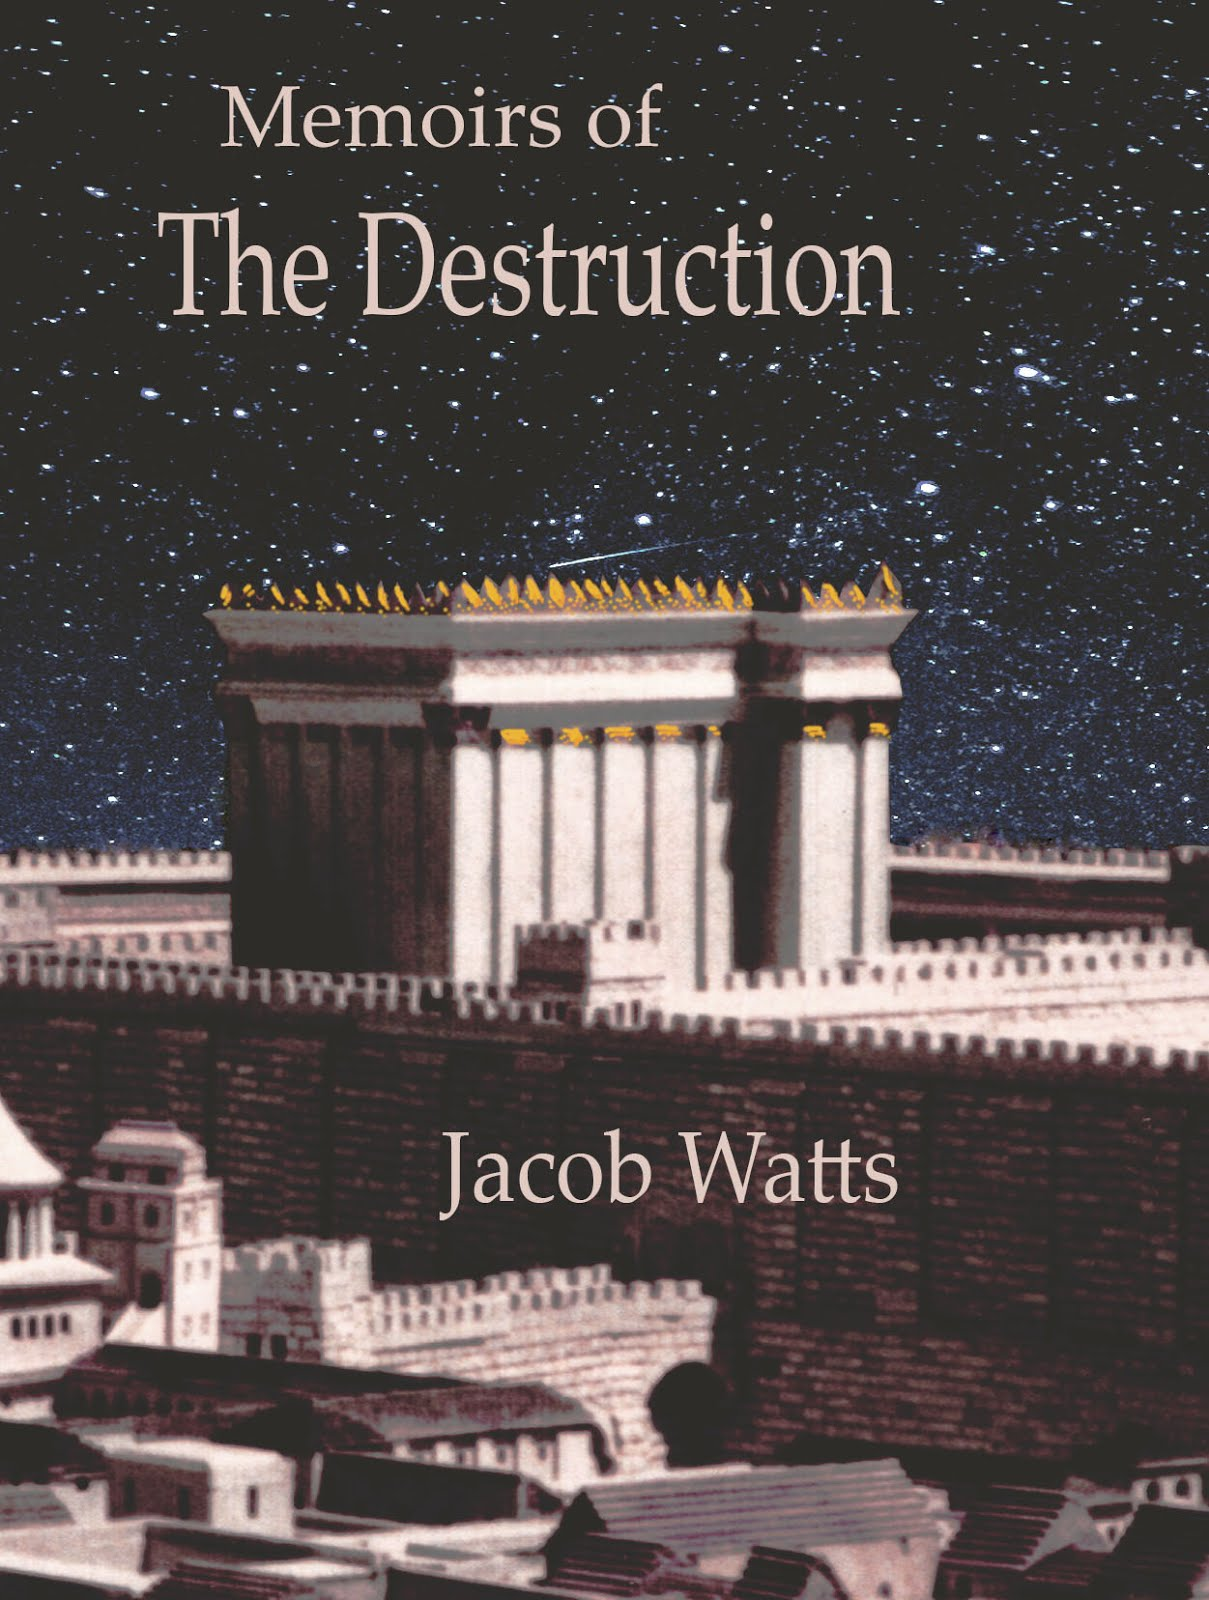 Novel About the First-Century Jewish Revolt Against Rome